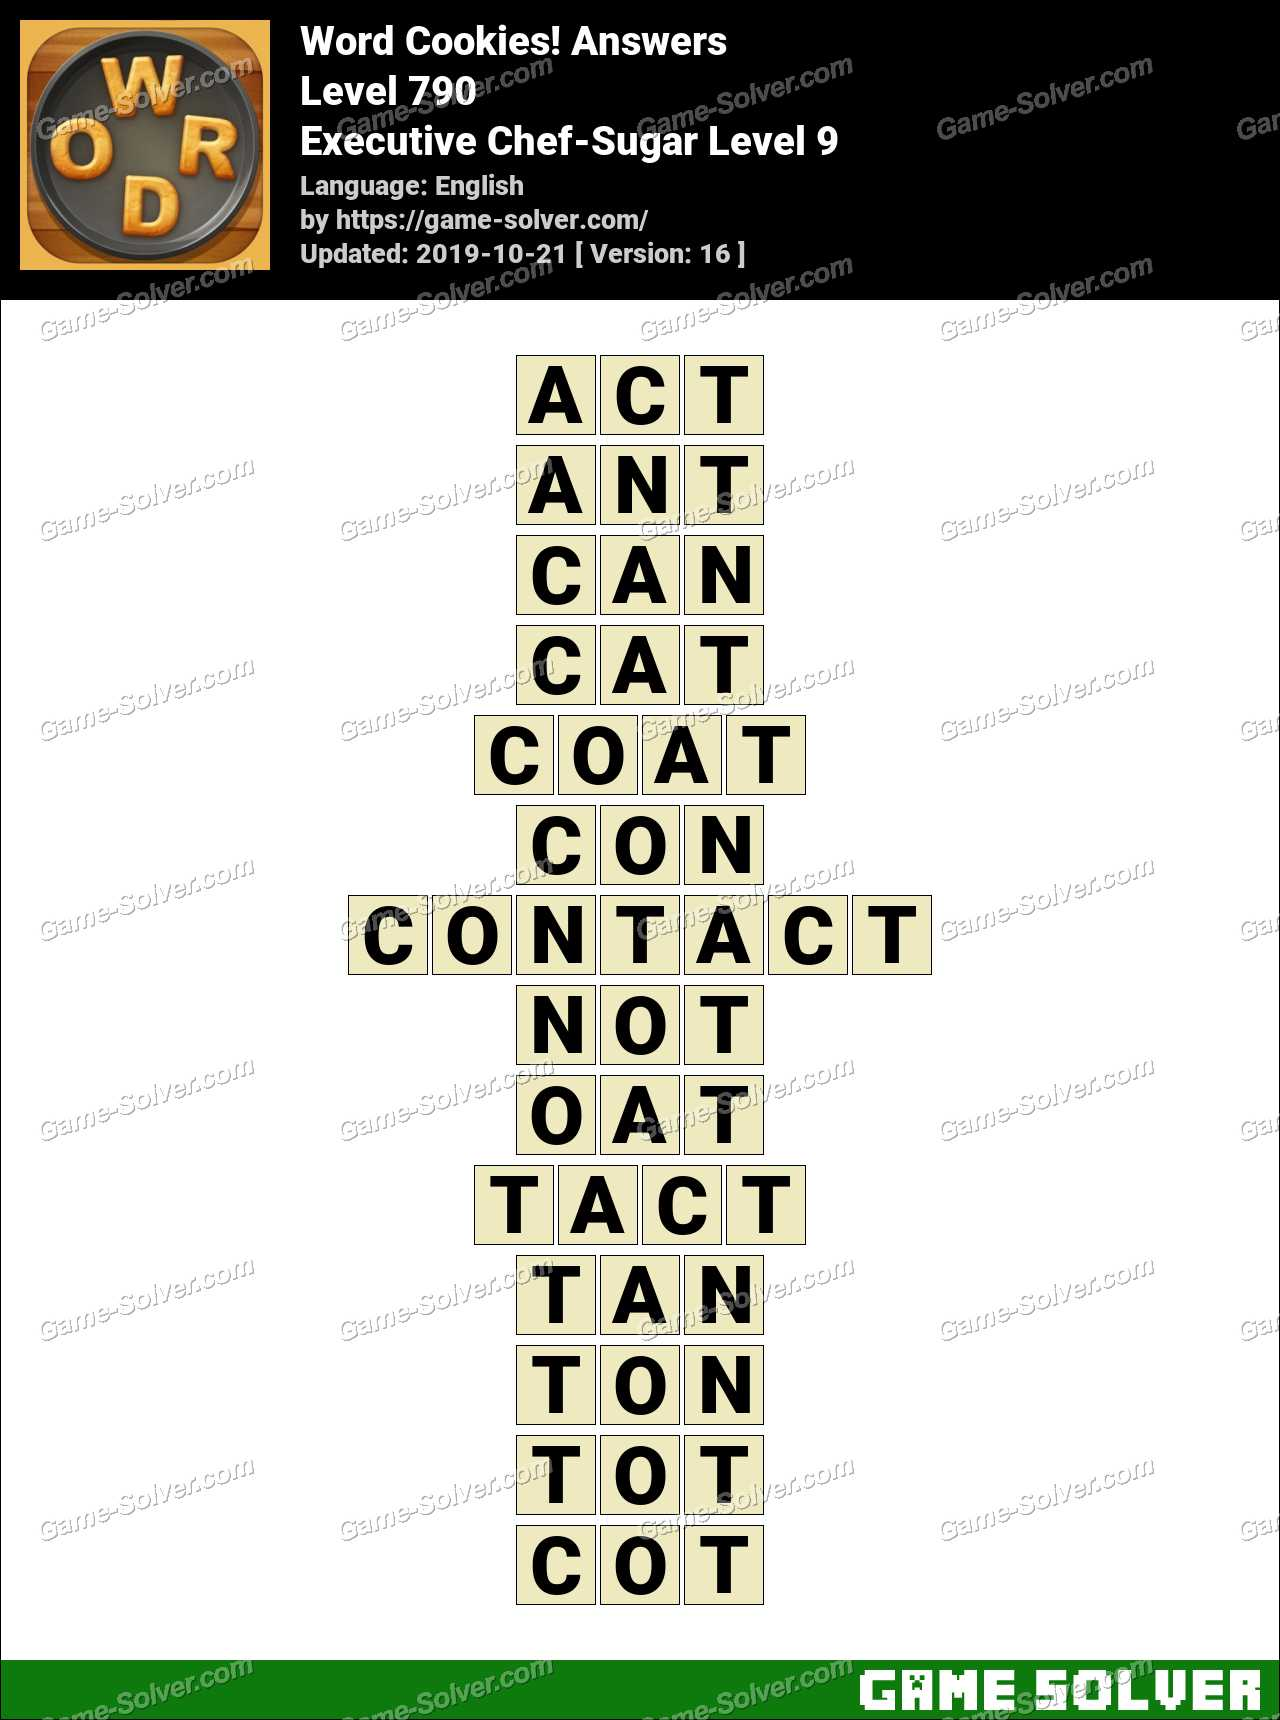 Word Cookies Executive Chef-Sugar Level 9 Answers